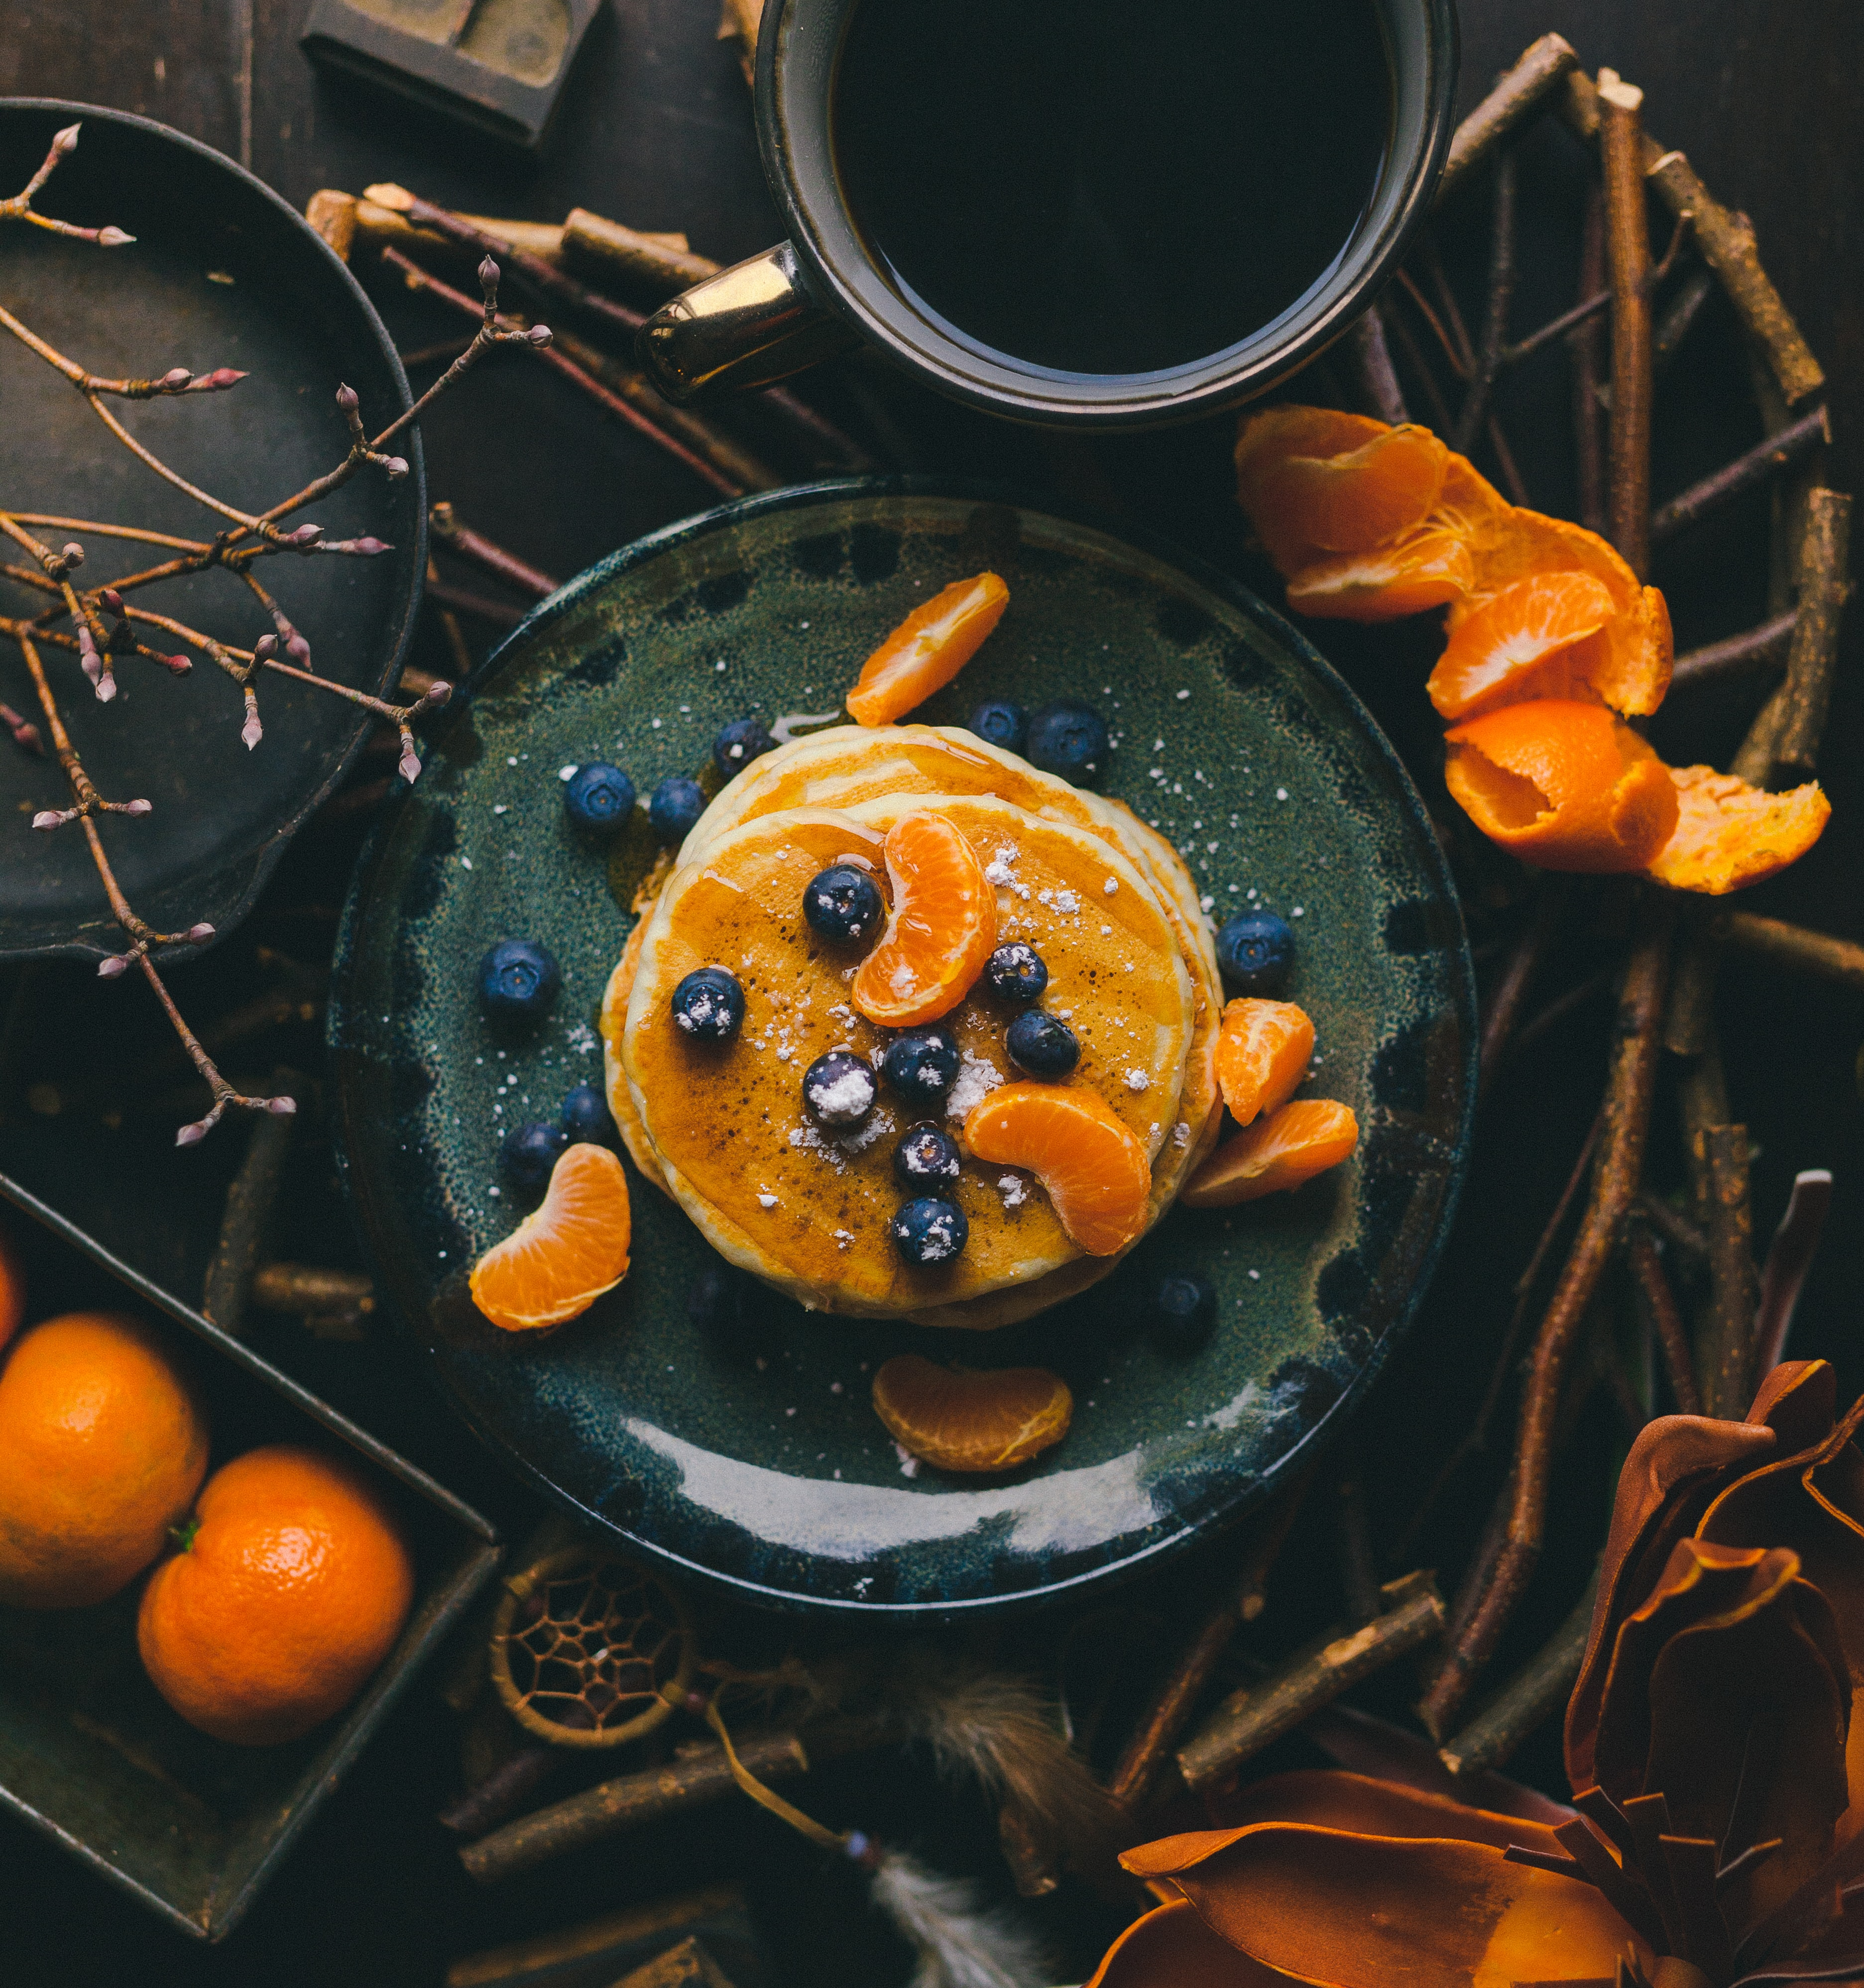 pancakes with orange and blueberry on plate